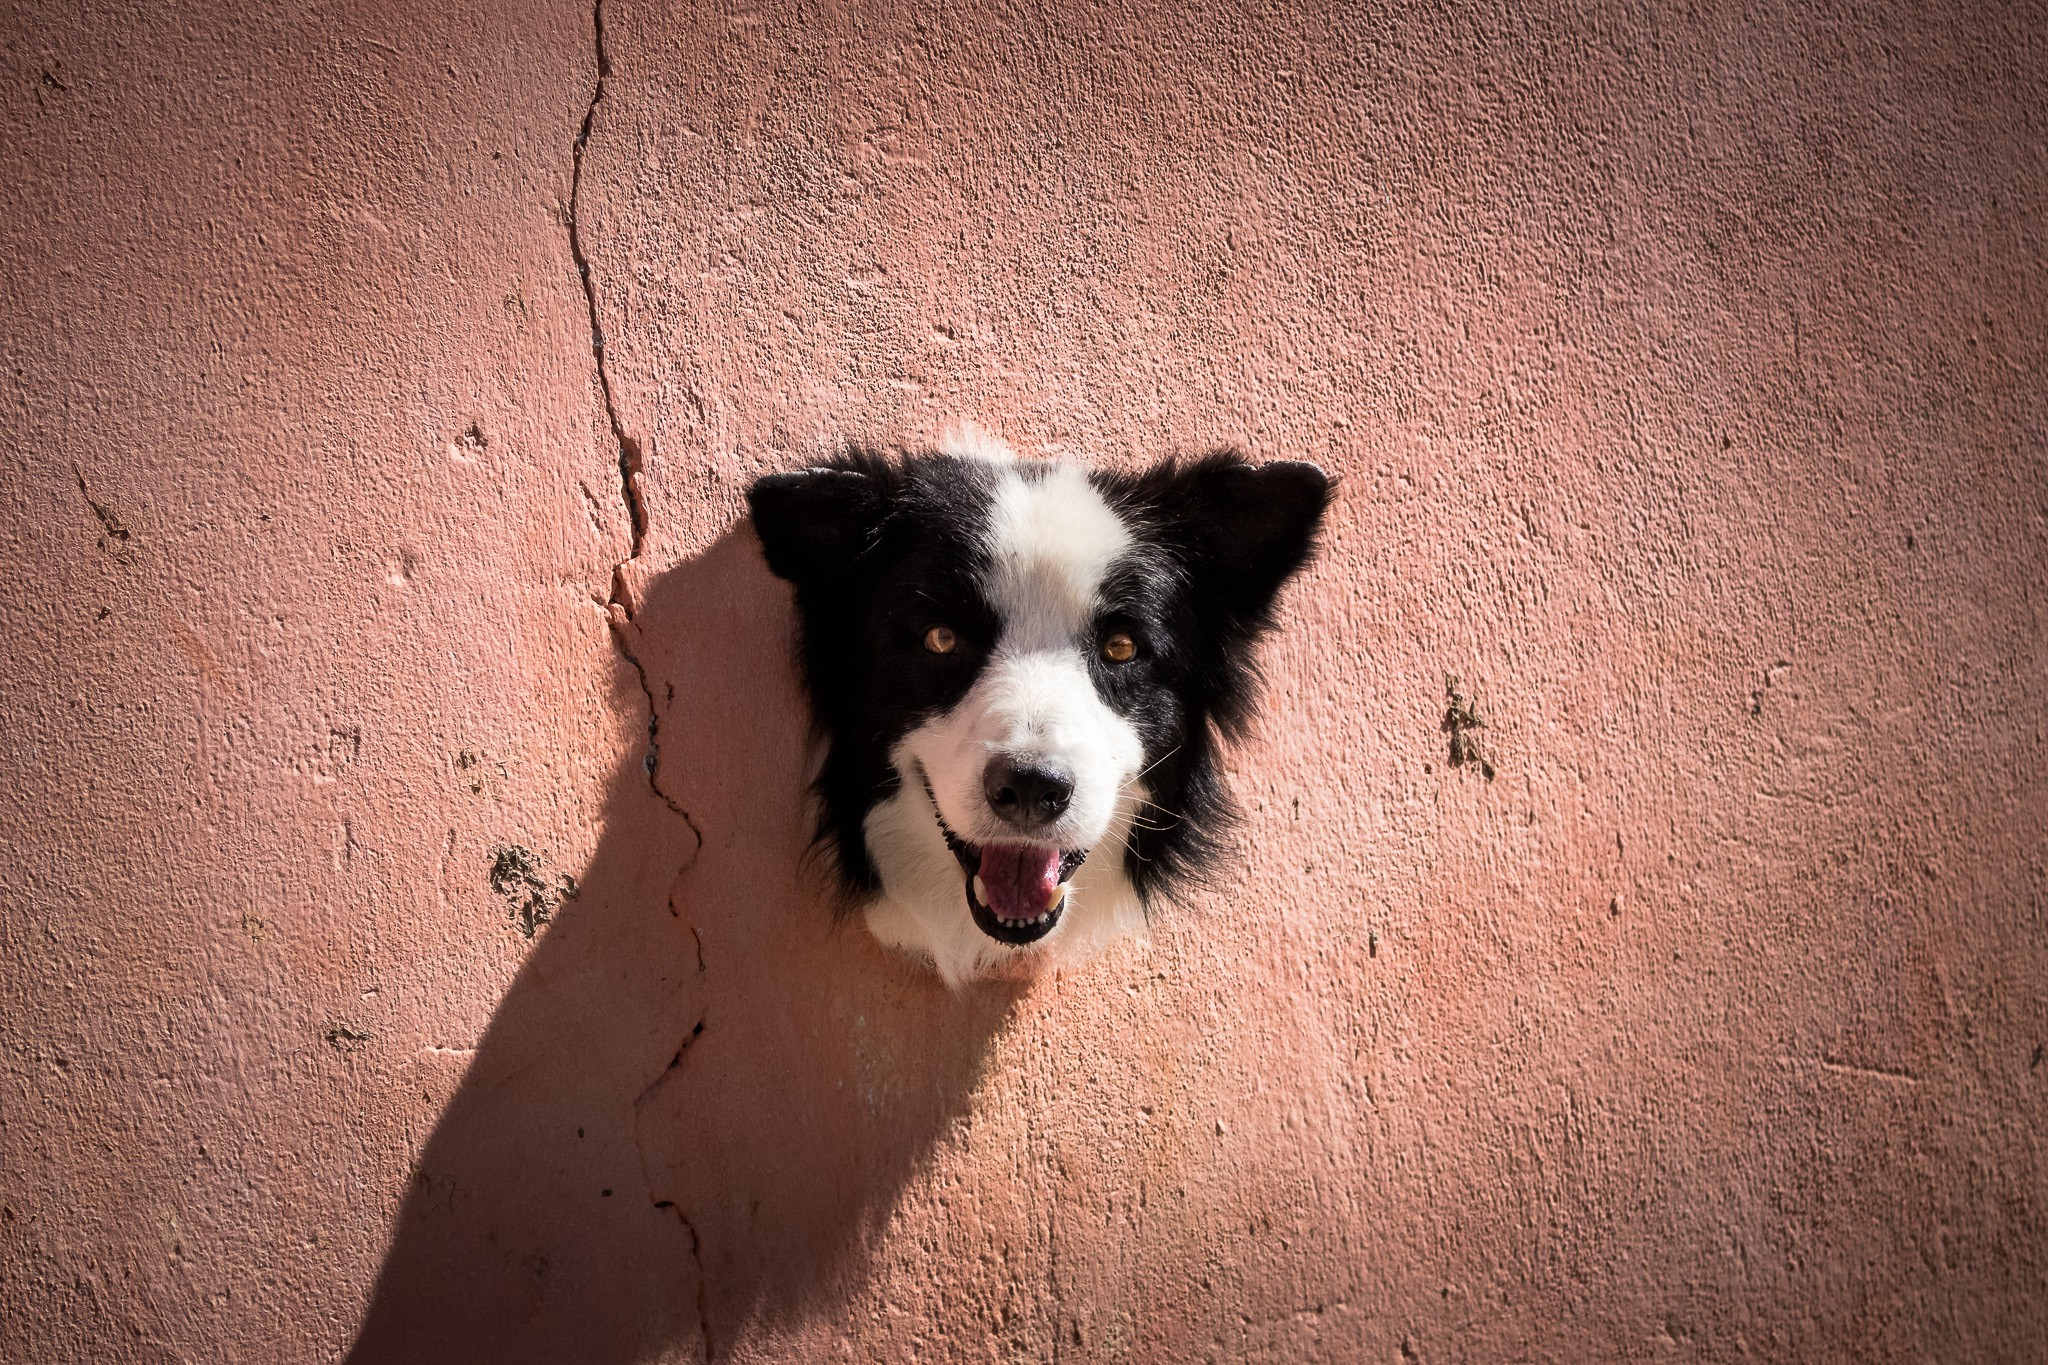 A border collie dog sticks her head out of a hole in a large red brick wall, smiling towards the camera lens